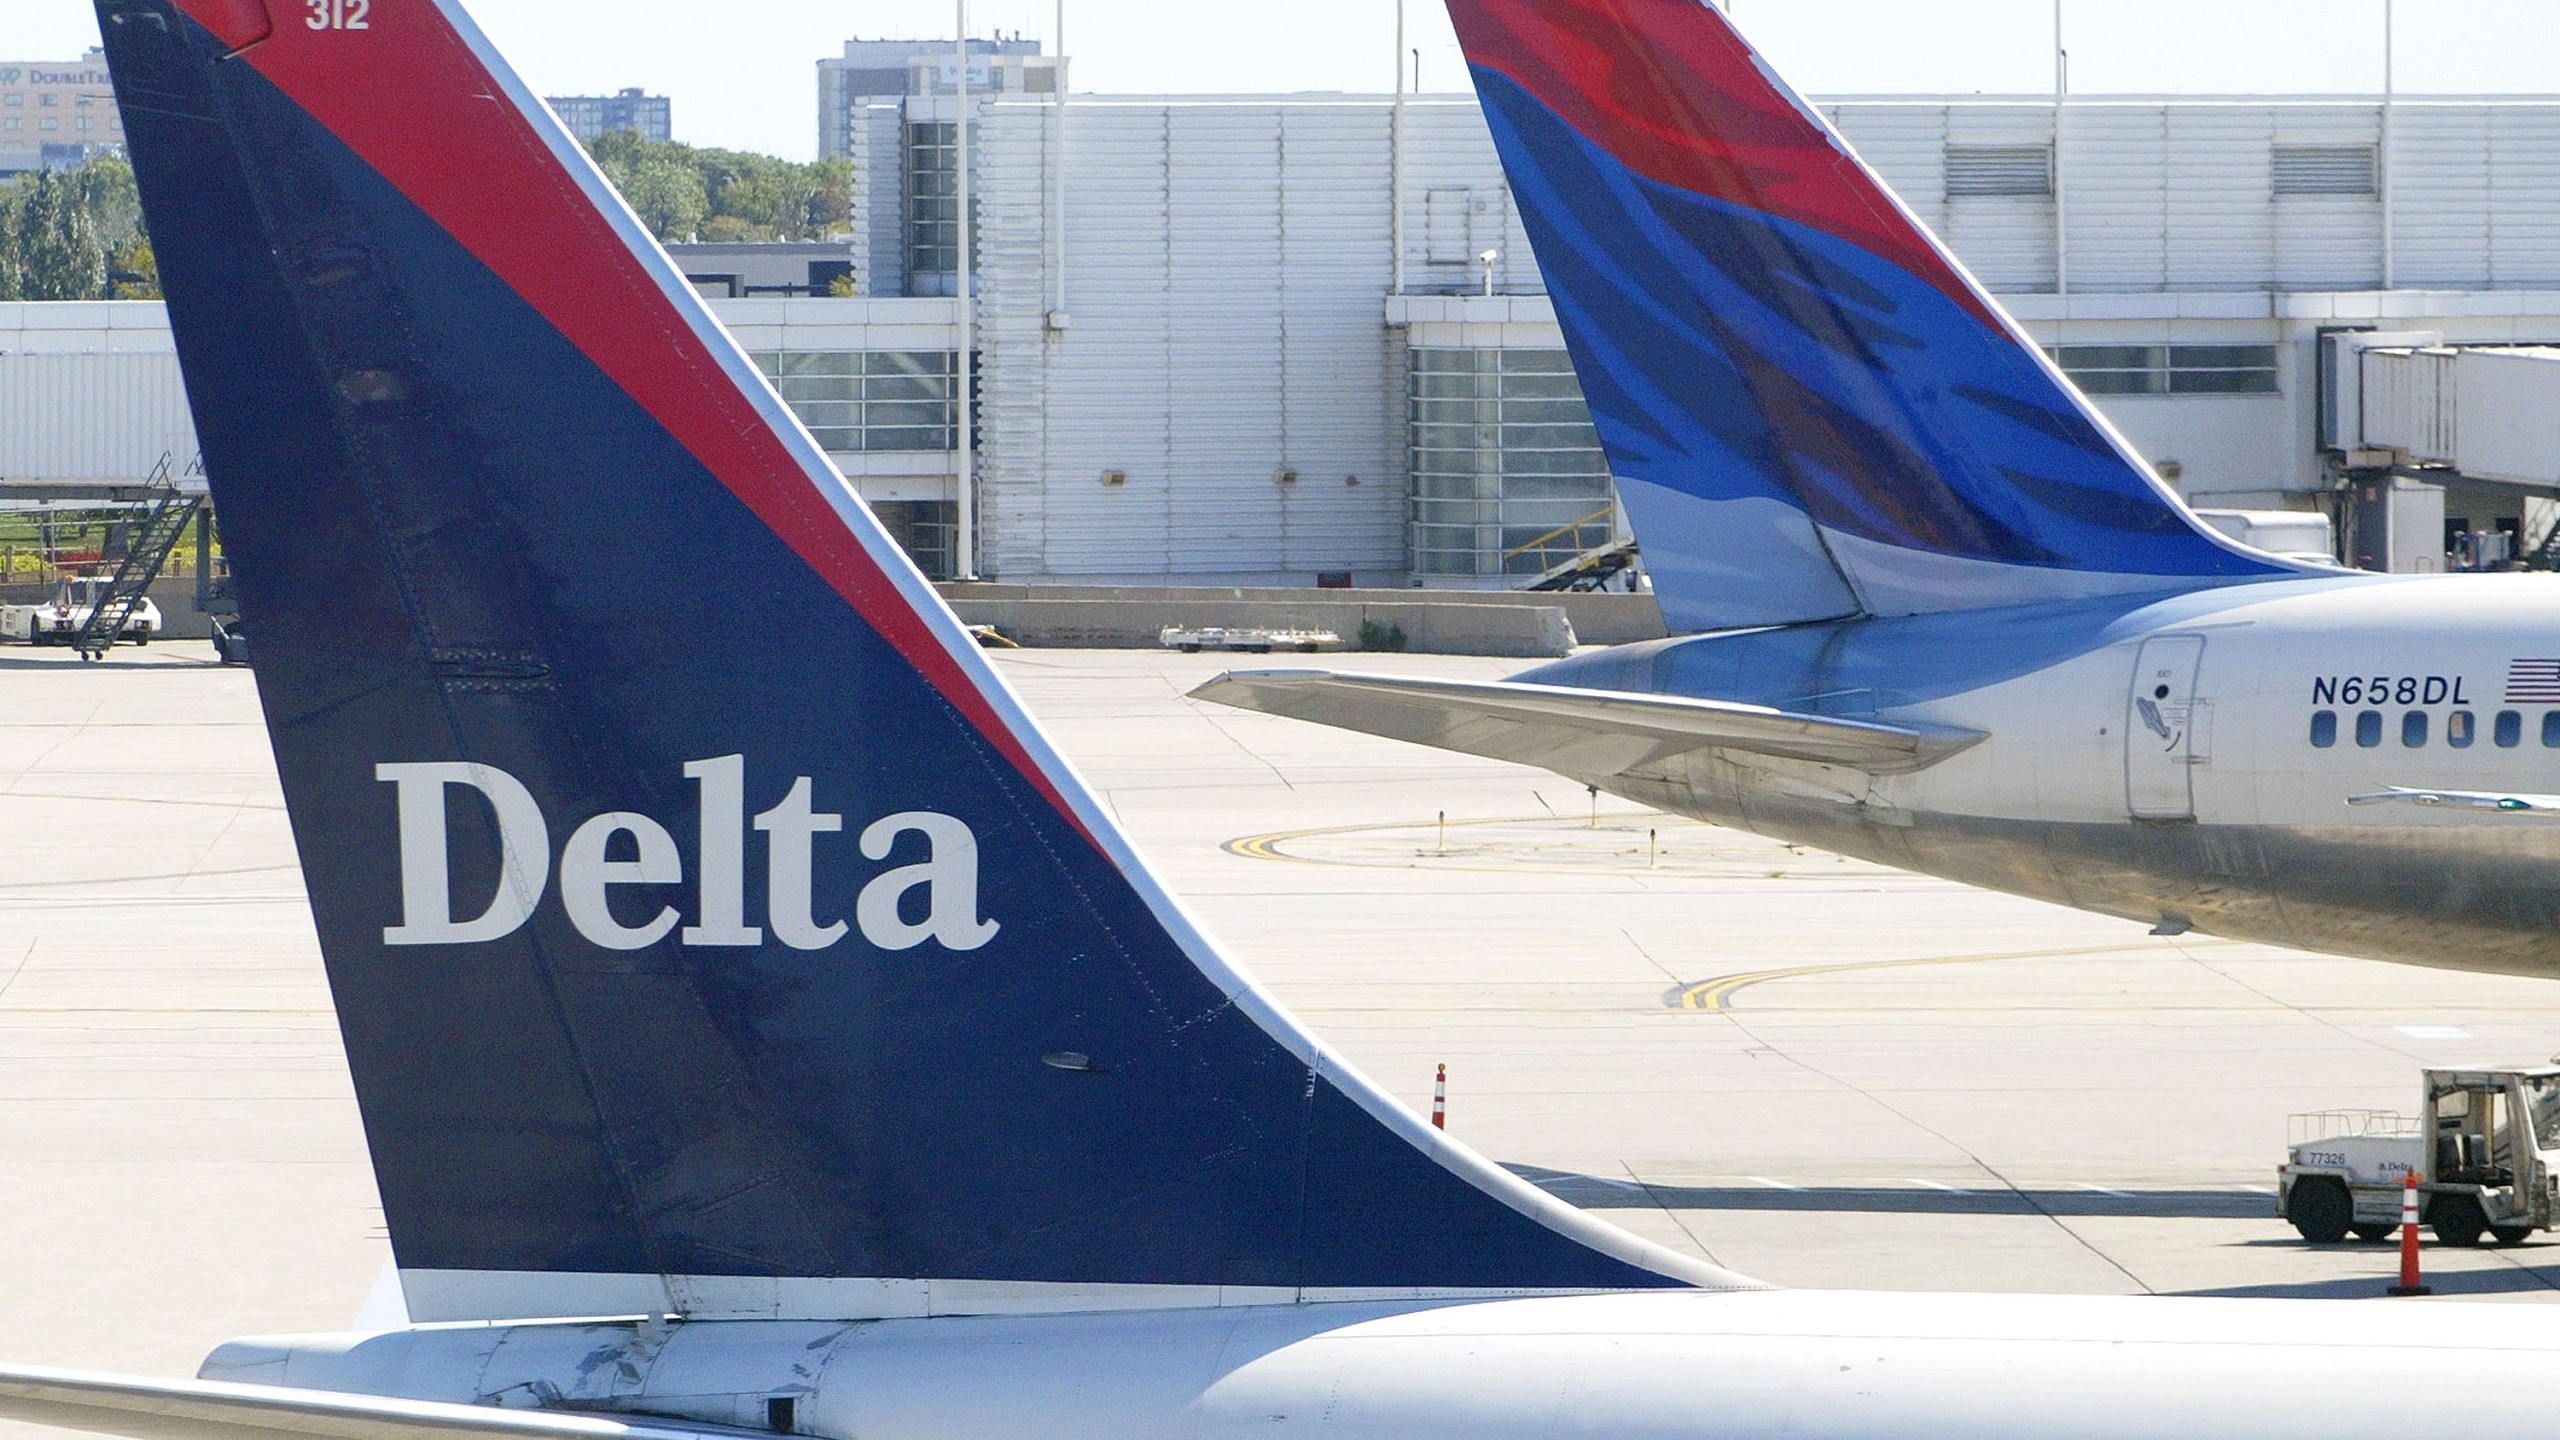 Tails of two Delta Air Lines jets are seen on Sept. 17, 2004 at O'Hare International Airport in Chicago, Illinois. (Credit: Tim Boyle/Getty Images)